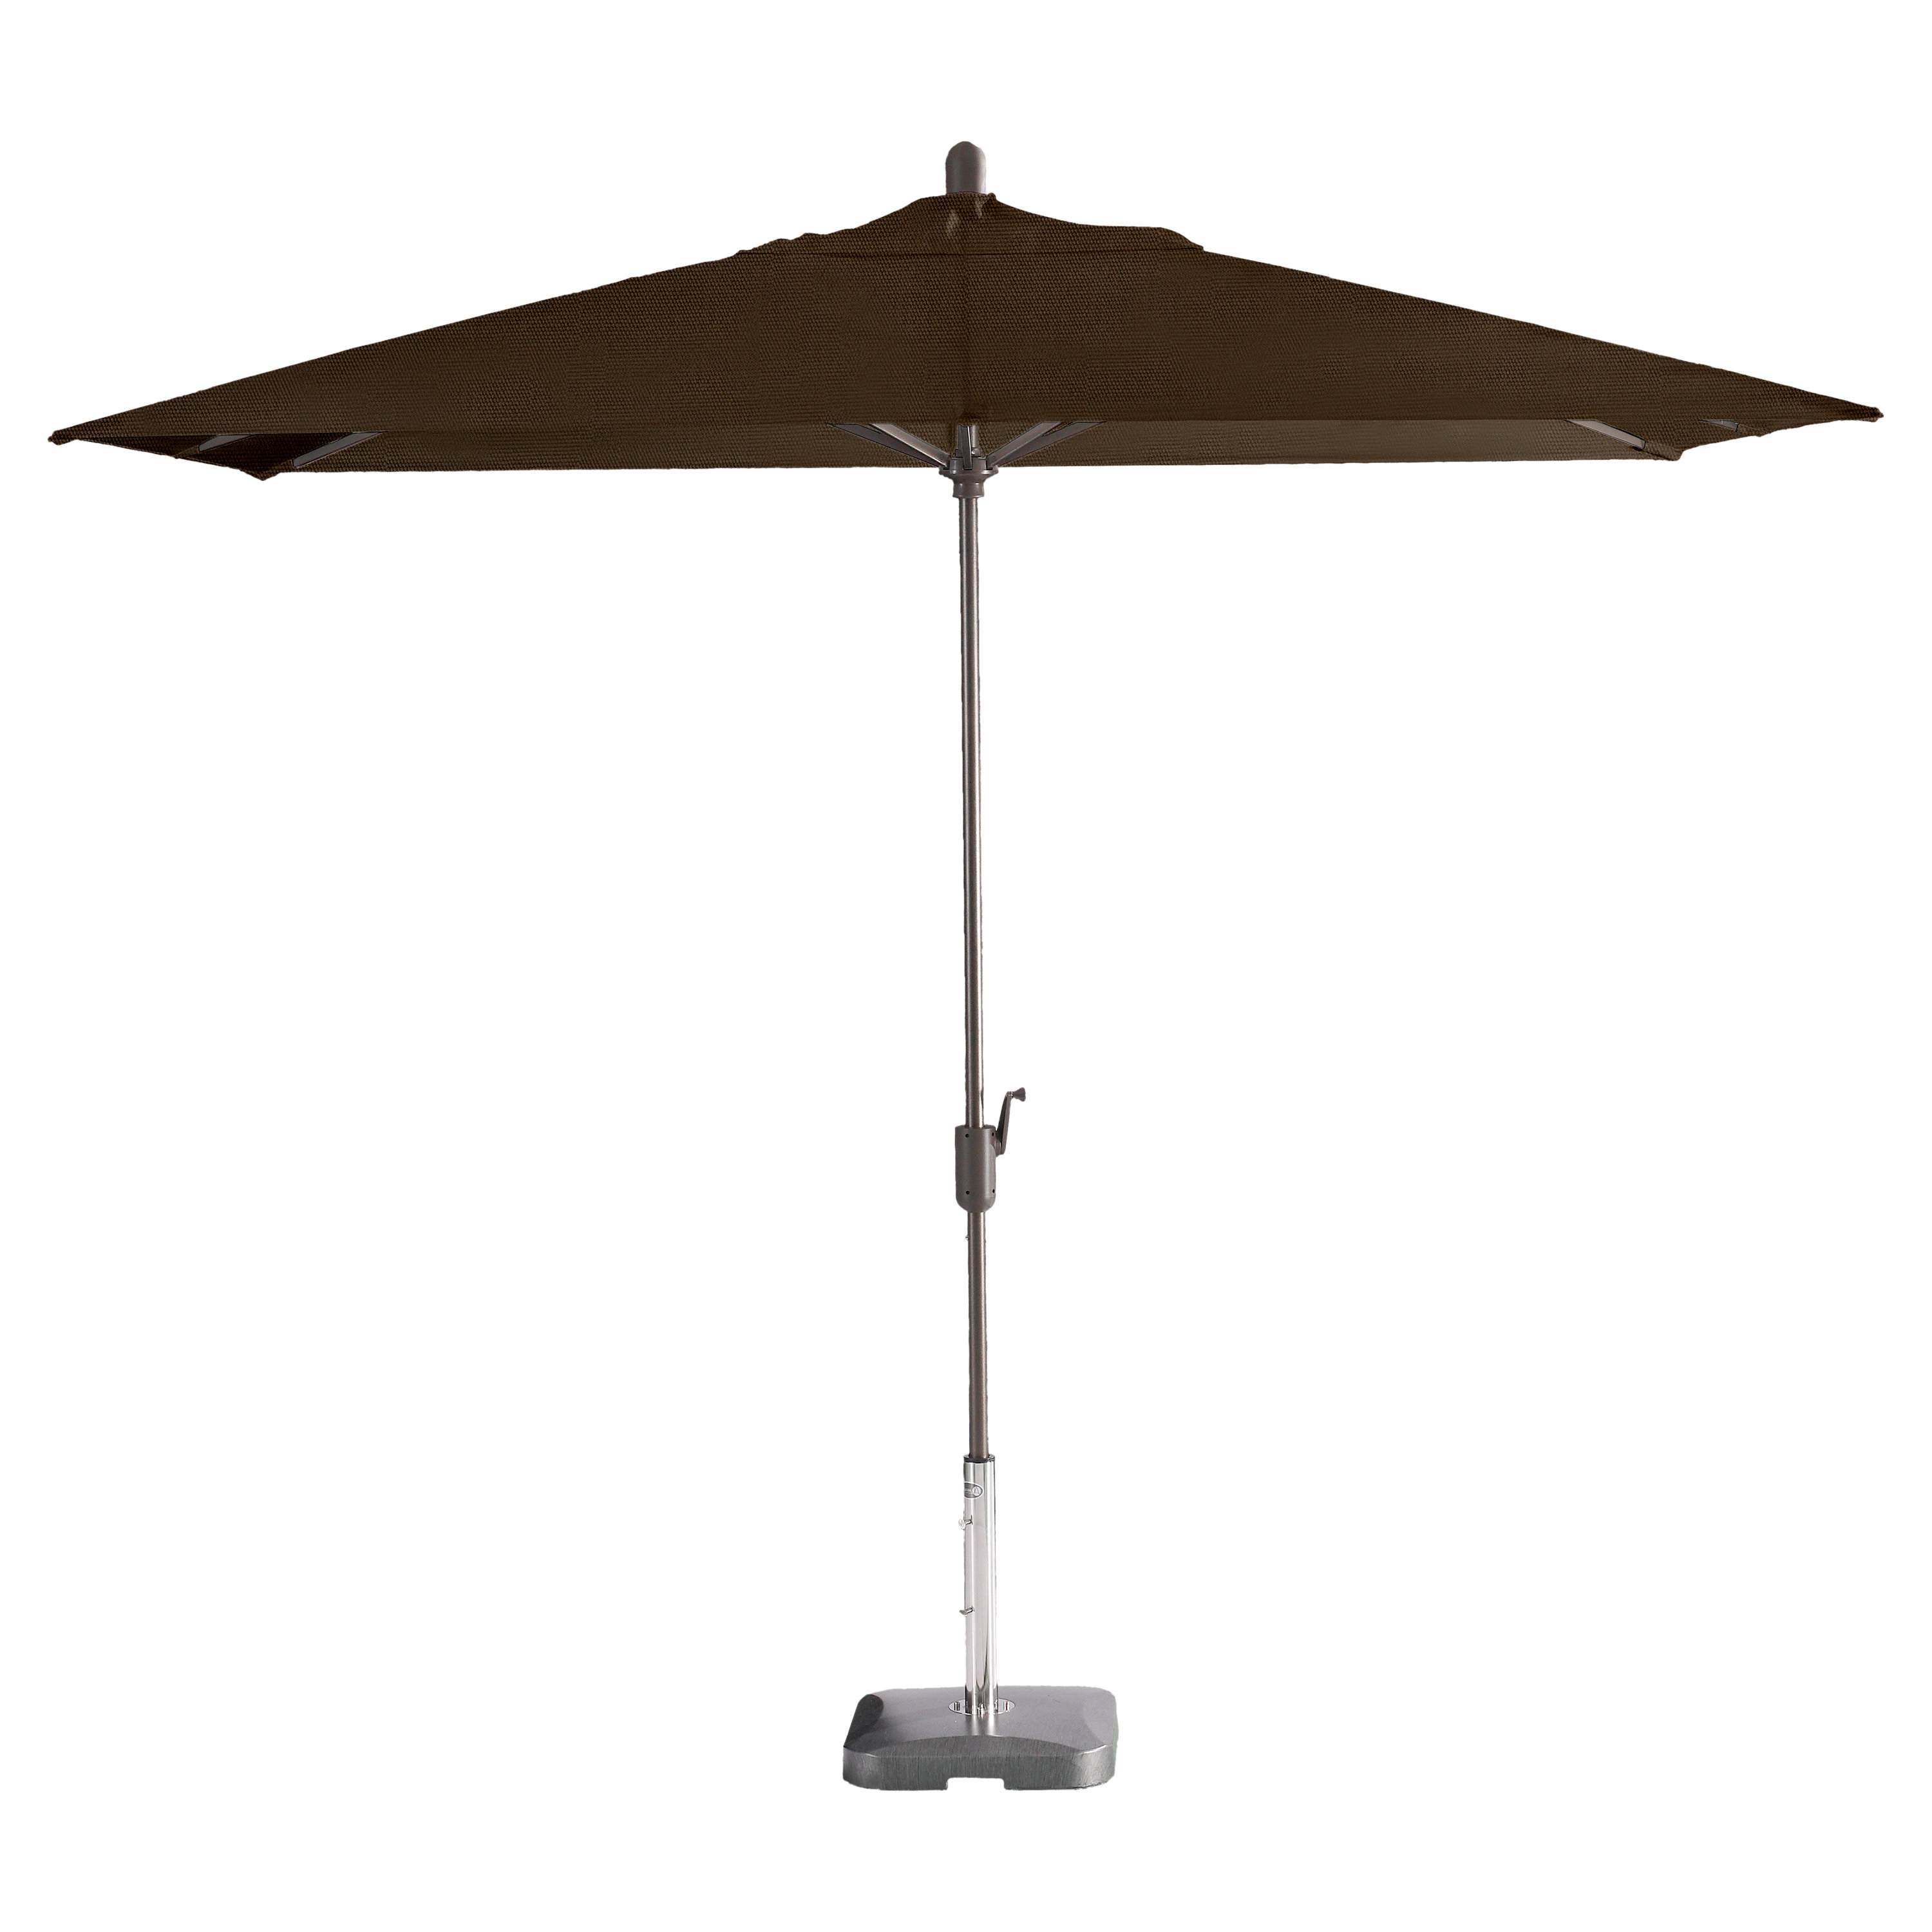 Most Recent Longshore Tides Alexander Elastic 10' X 6.5' Rectangular Market Throughout Wieczorek Auto Tilt Rectangular Market Sunbrella Umbrellas (Gallery 4 of 20)